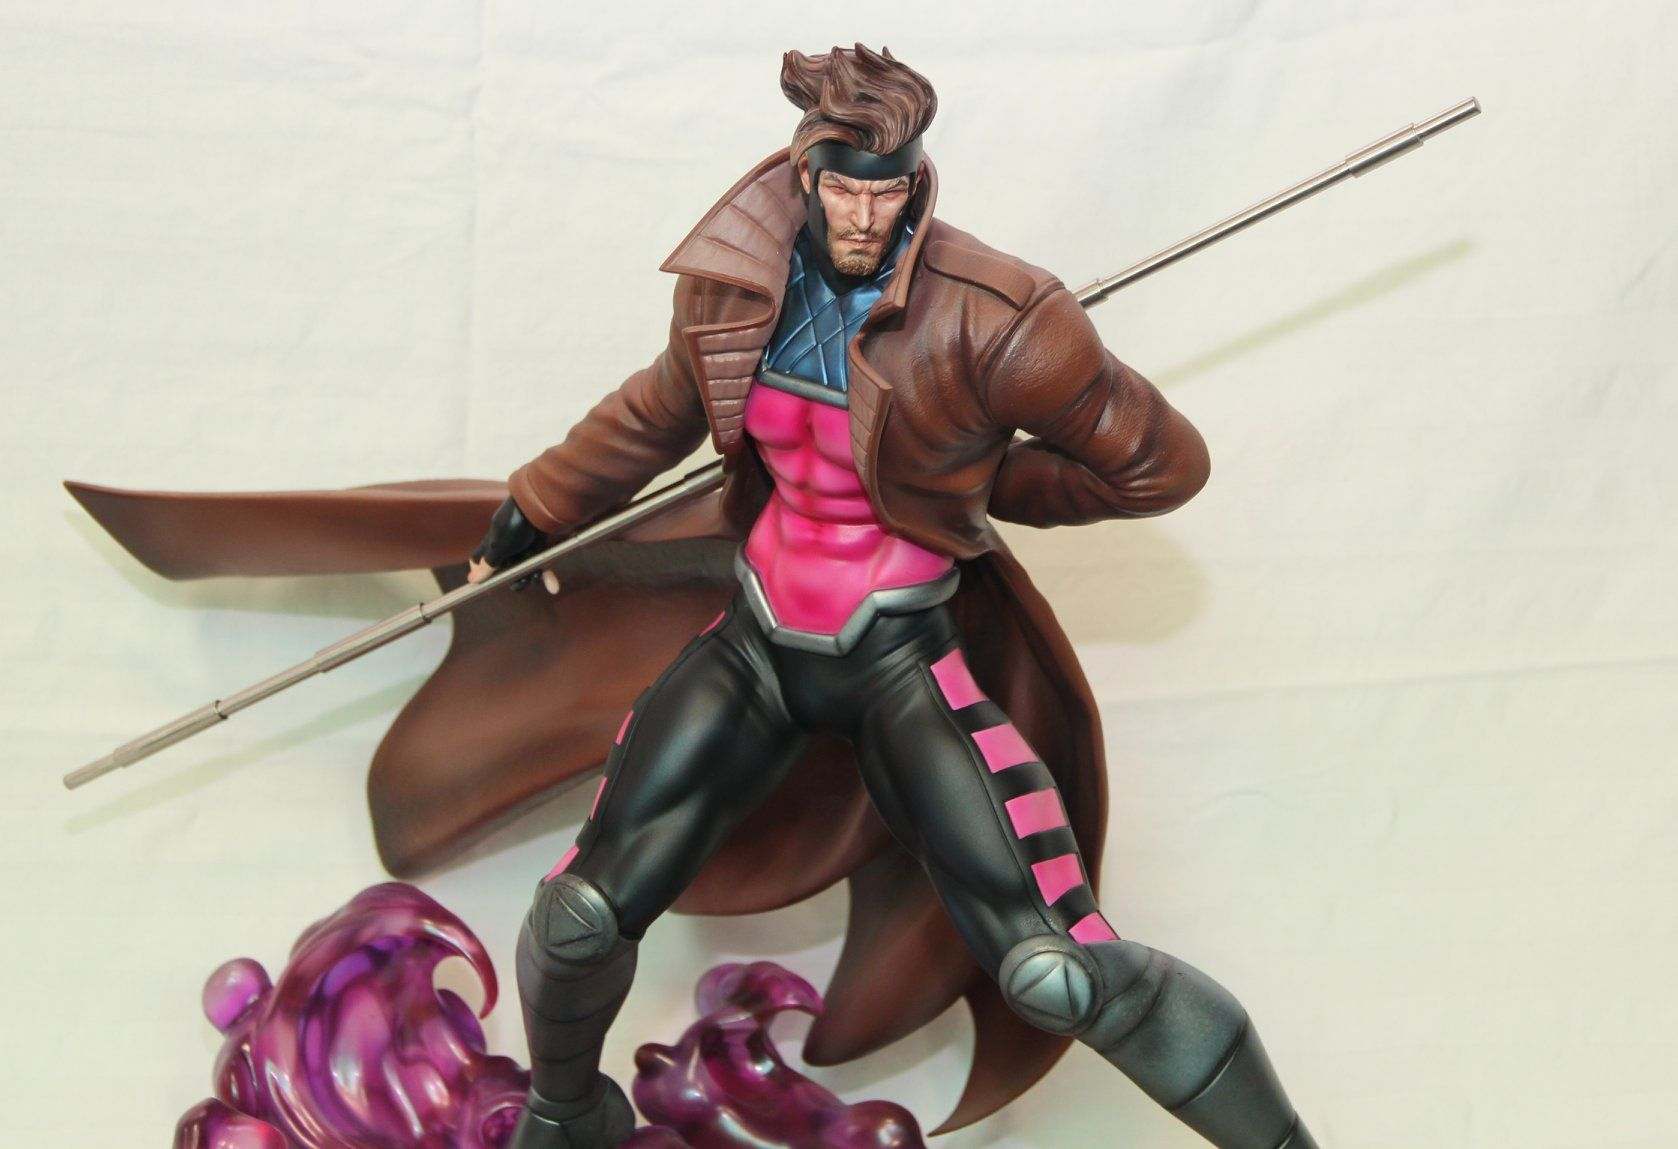 Marvel Vs Capcom Gambit Statue 1/4 Scale - X-men - Translucent base  - Movie Freaks Collectibles